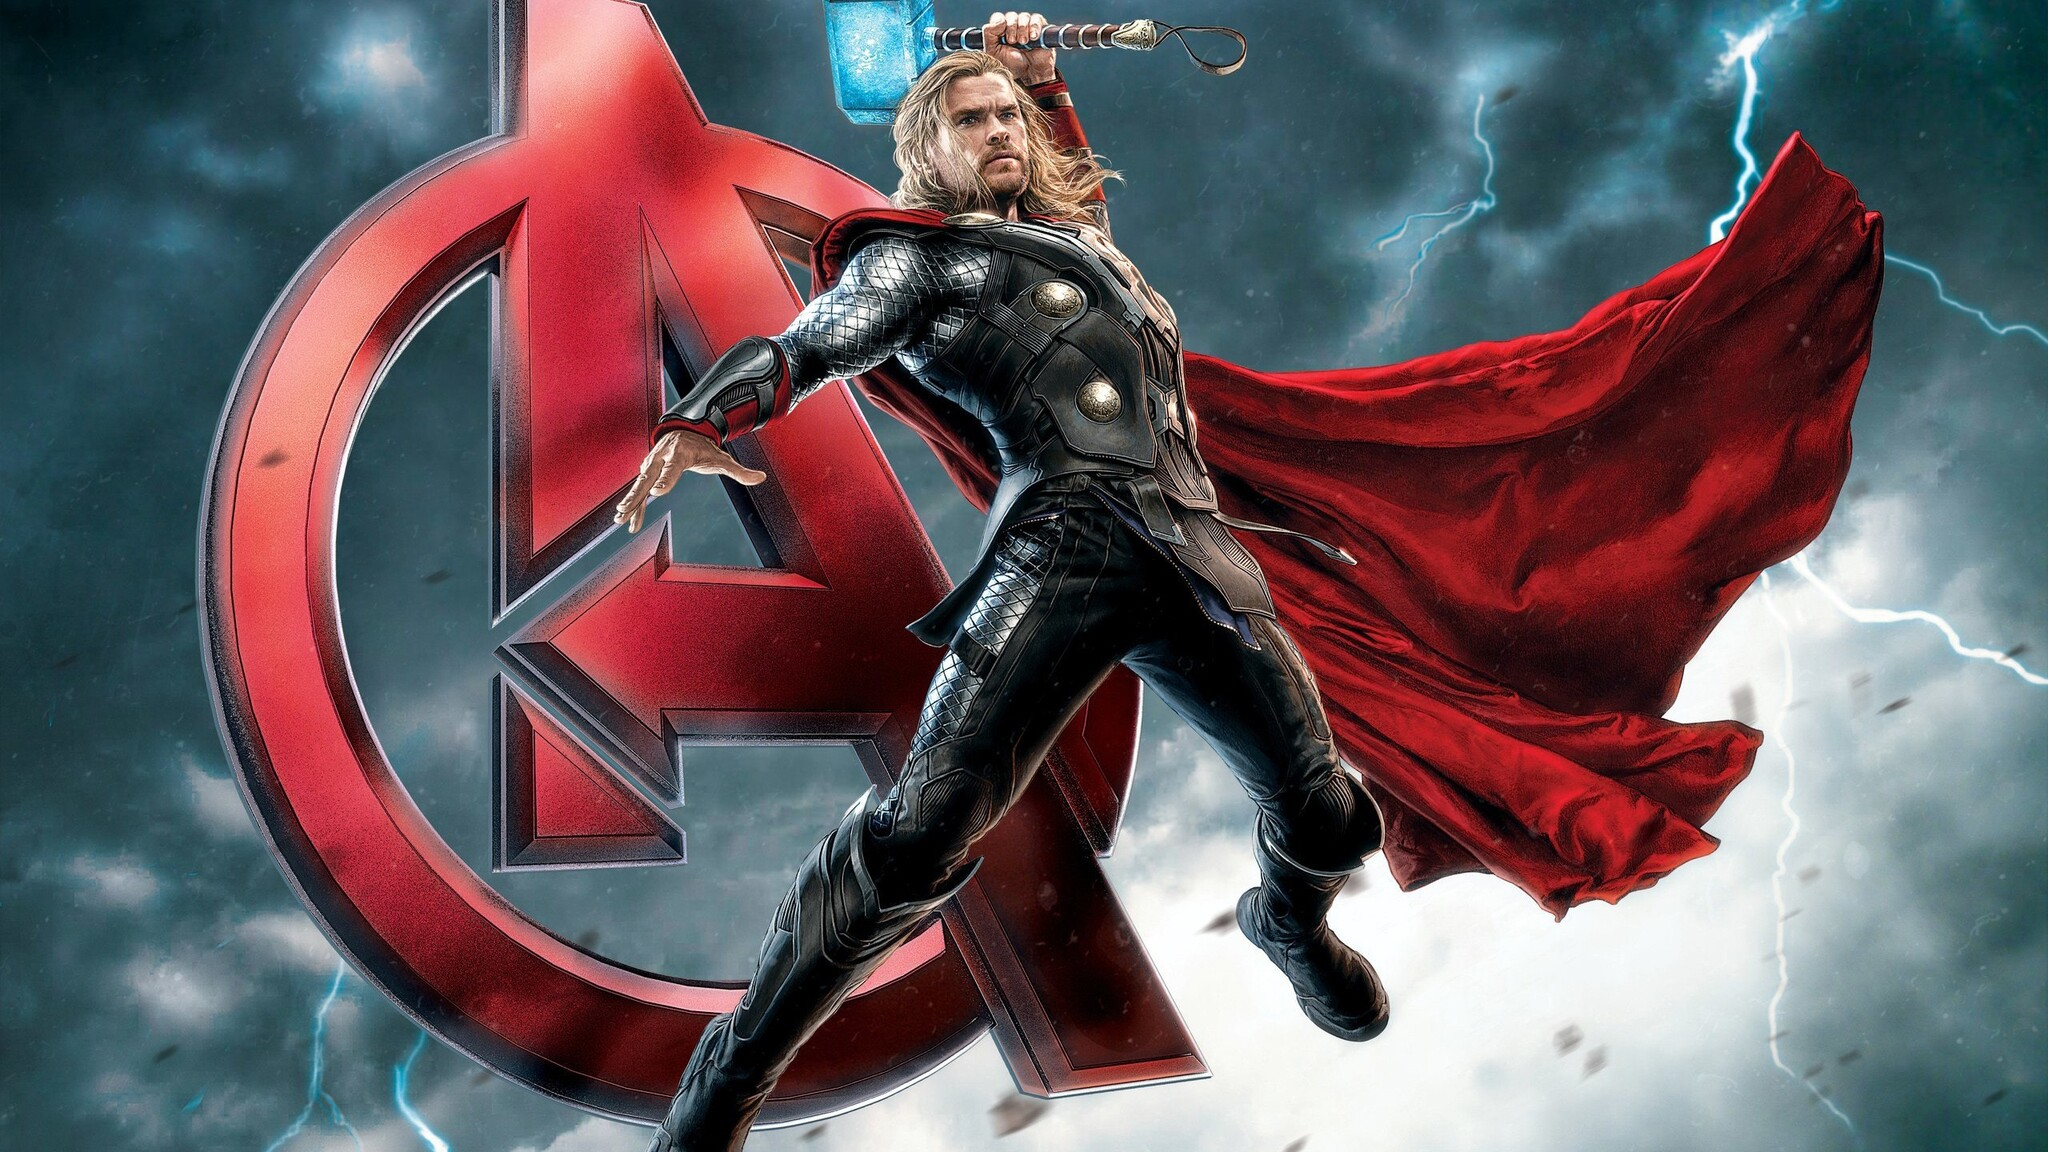 2048x1152 Thor Avengers 2048x1152 Resolution Hd 4k Wallpapers Images Backgrounds Photos And Pictures